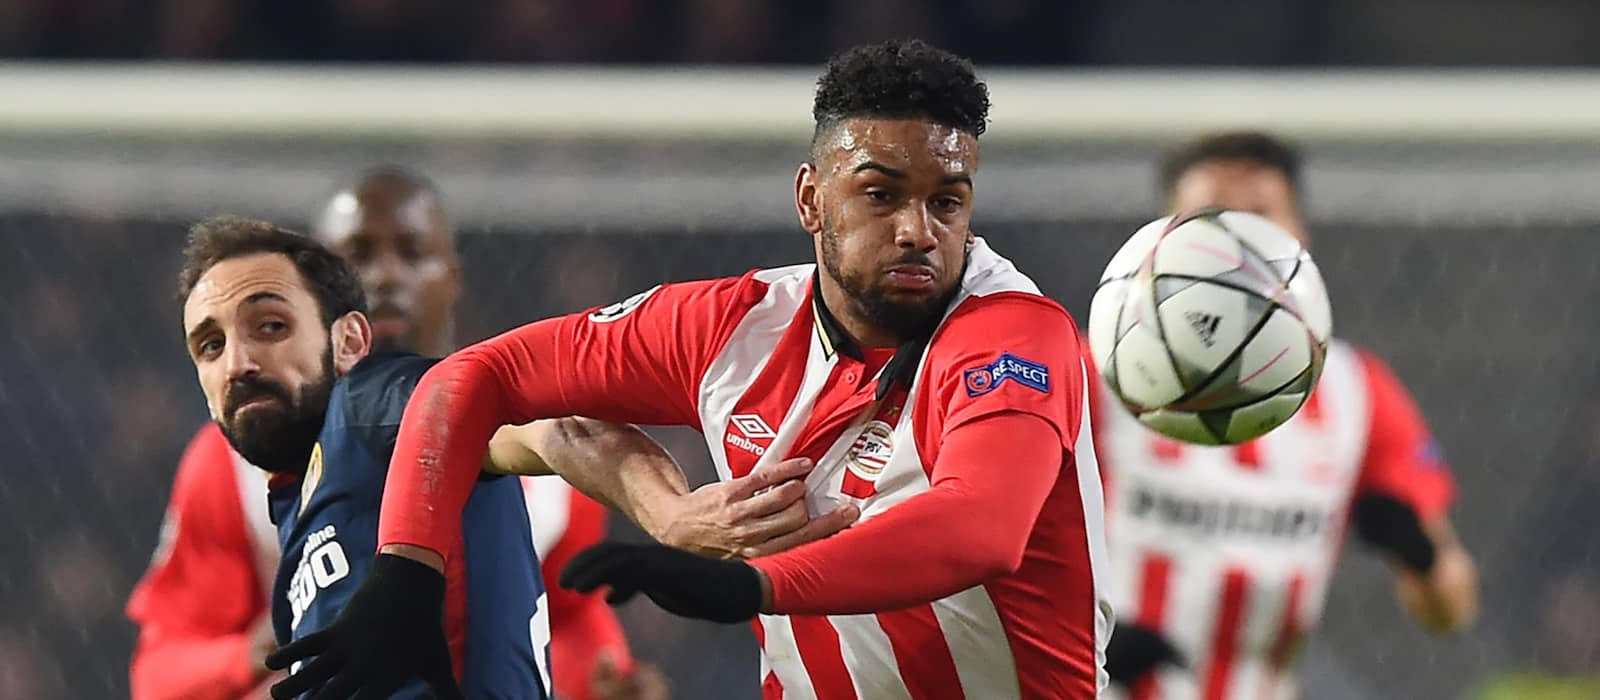 Jurgen Locadia admits he dreams of playing for Manchester United